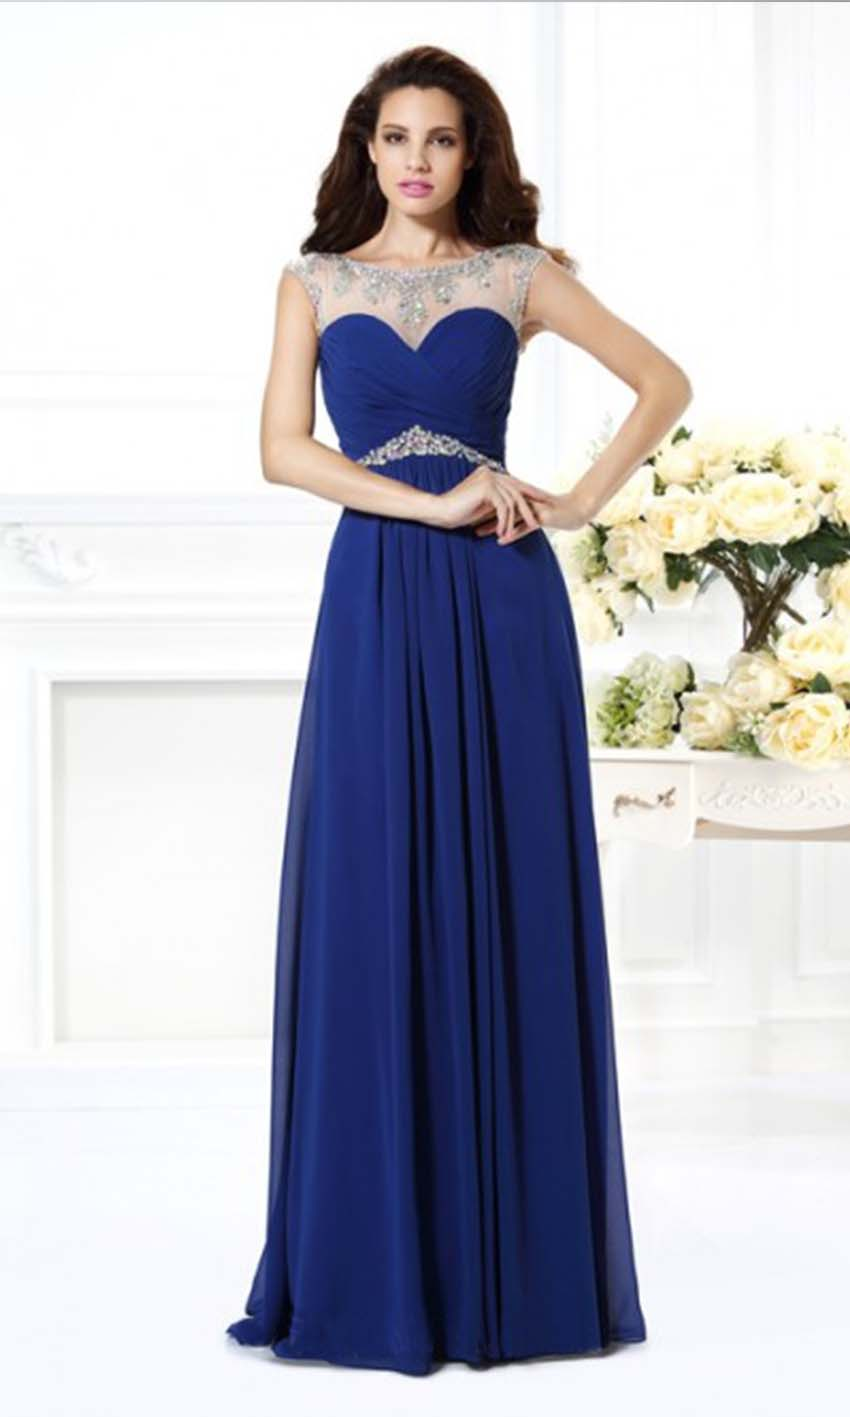 Cheap uk bridesmaid dresses images braidsmaid dress cocktail blue illusion long lace prom dresses uk ksp346 ksp346 9400 blue illusion long lace prom dresses ombrellifo Image collections